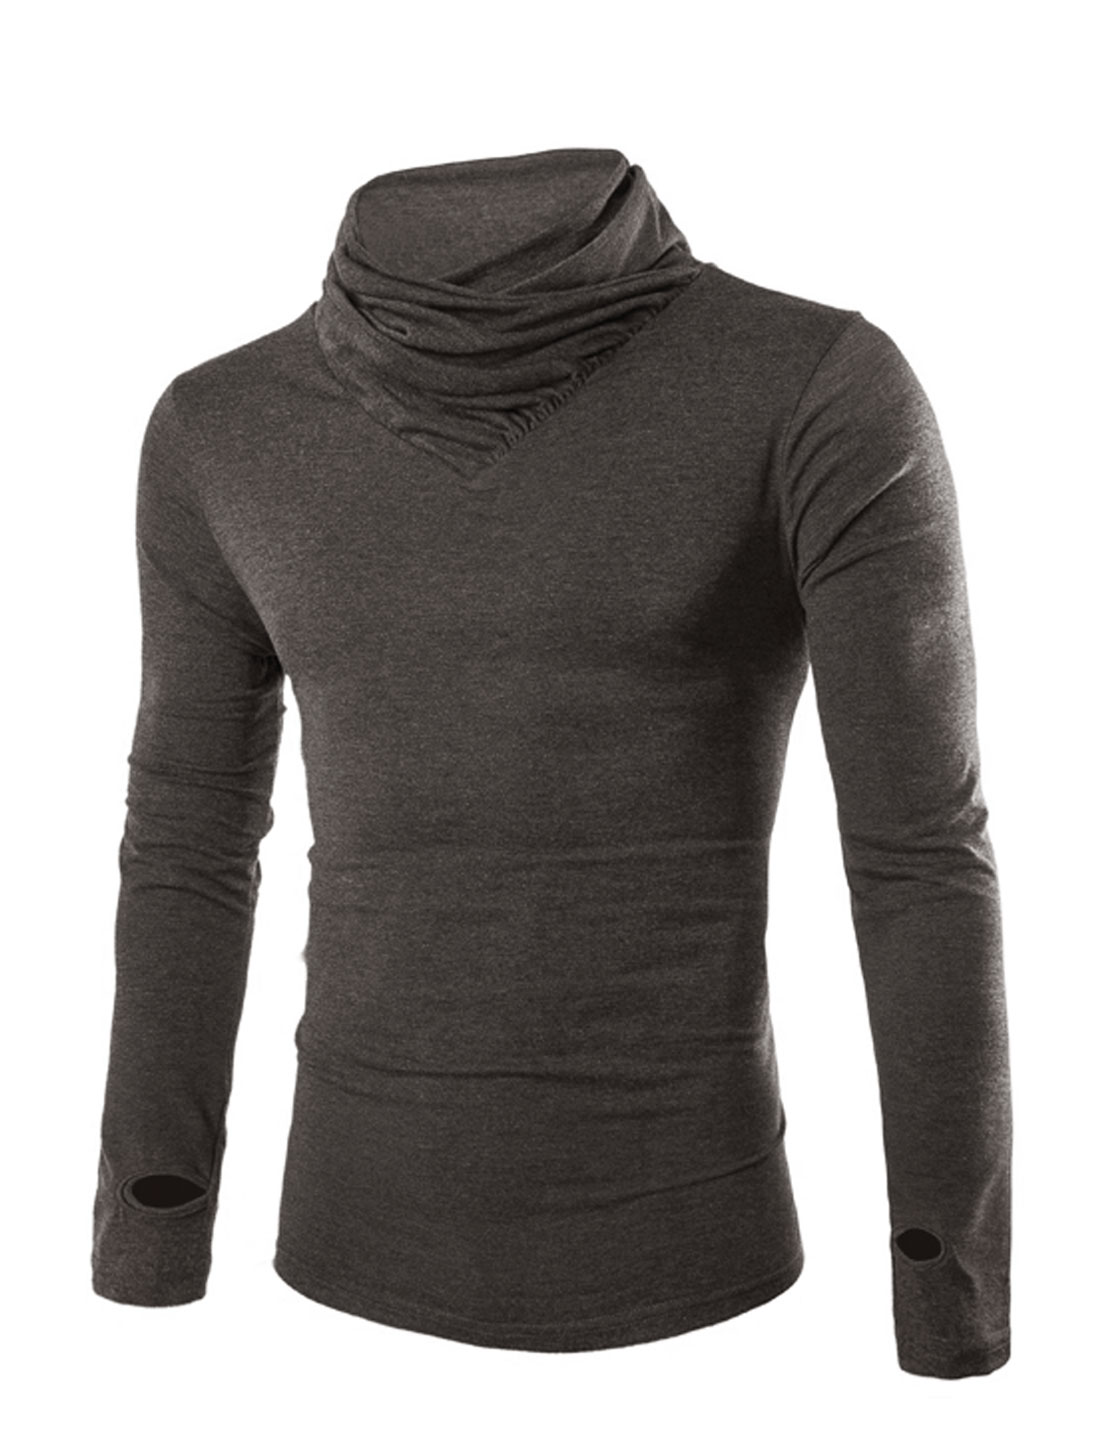 Men Cowl Neck Long Sleeves Casual Basic Tee Dark Gray M